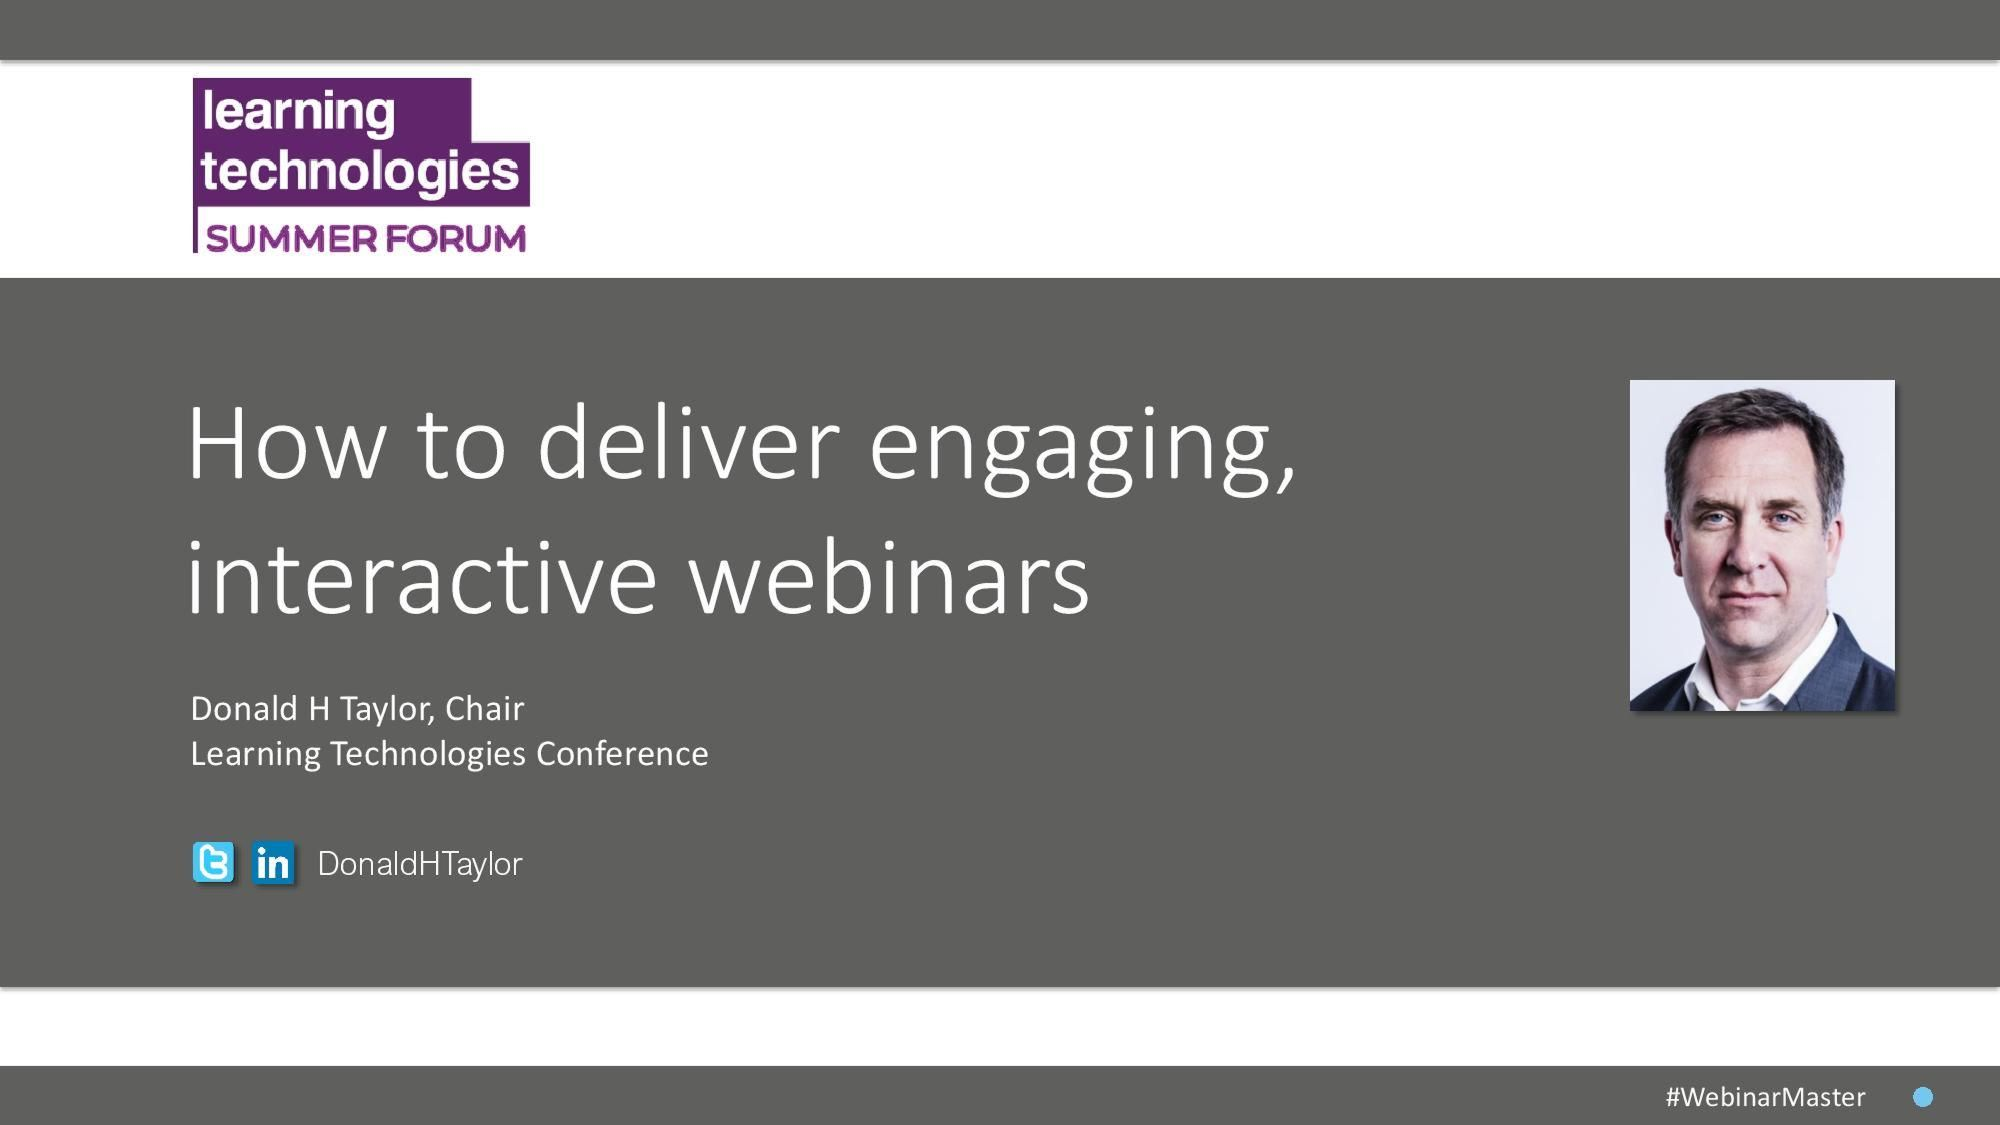 How to deliver engaging, interactive webinars